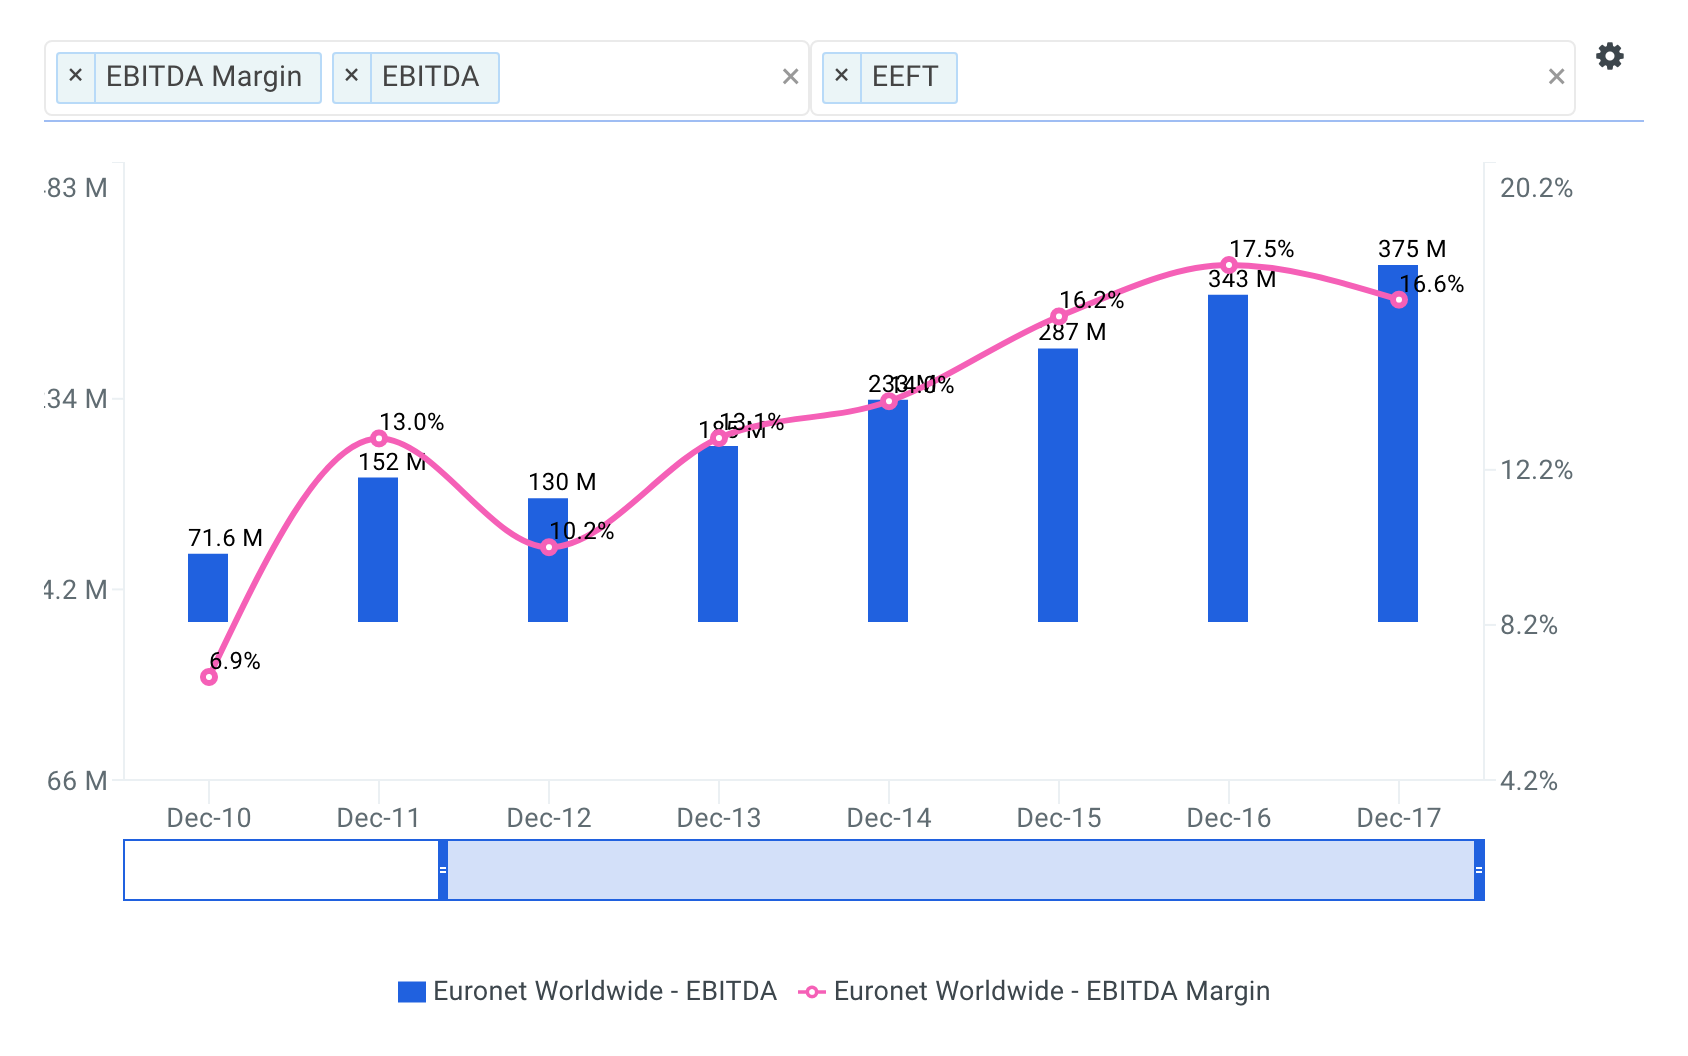 Euronet Worldwide Historical and Projected EBITDA Margin Chart